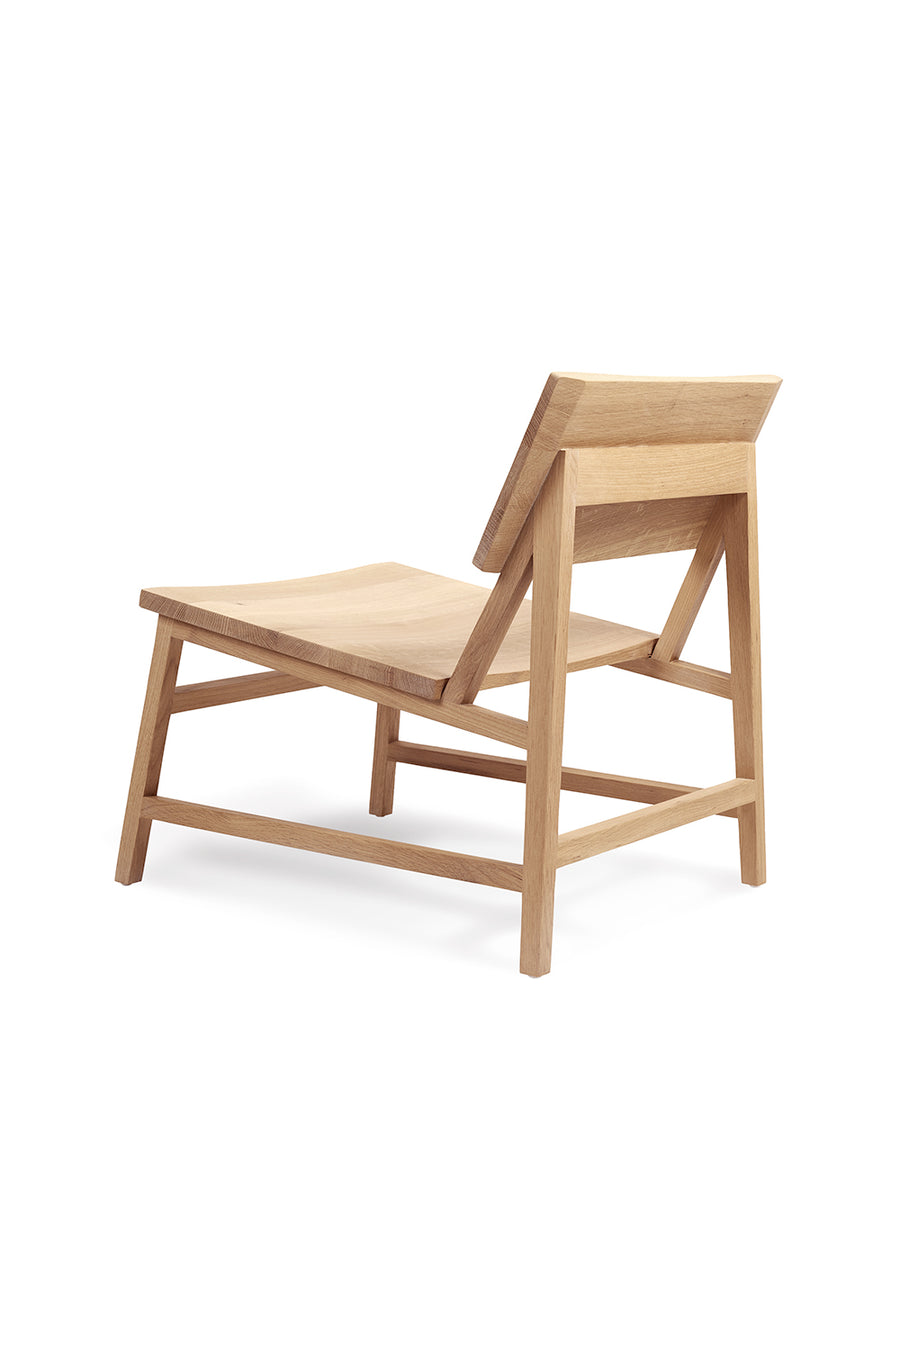 N2 Lounge Chair - Oak